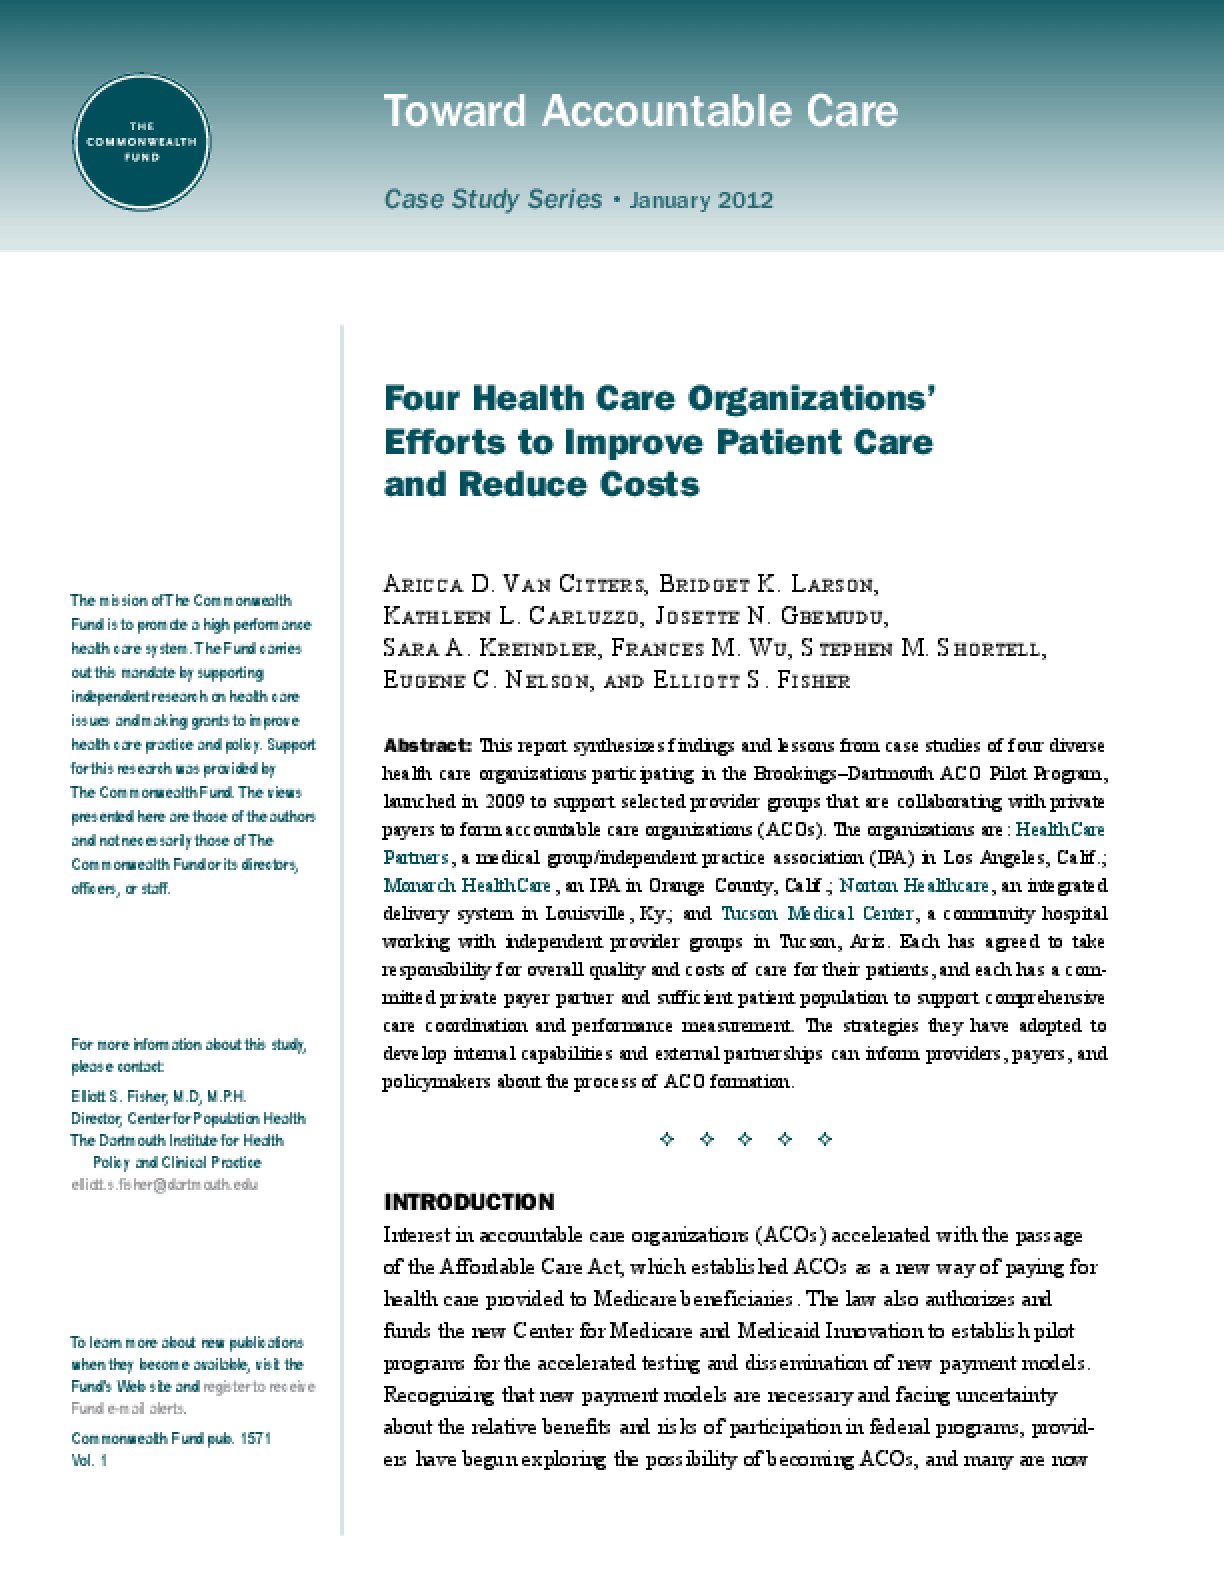 Four Health Care Organizations' Efforts to Improve Patient Care and Reduce Costs